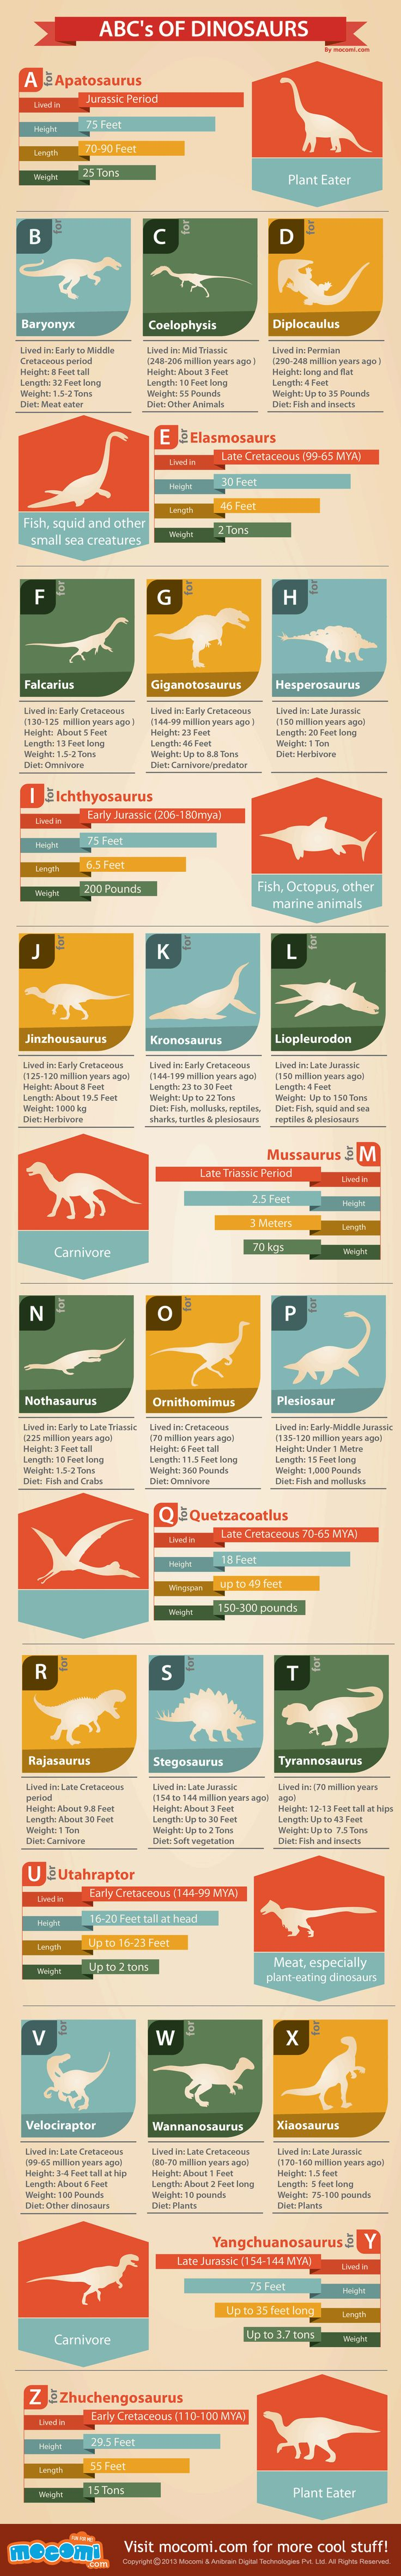 ABC's of Dinosaurs - Cool facts about 26 types of dinosaurs alphabetically arranged from A to Z. Among the thousands of dinosaurs that lived on our mo